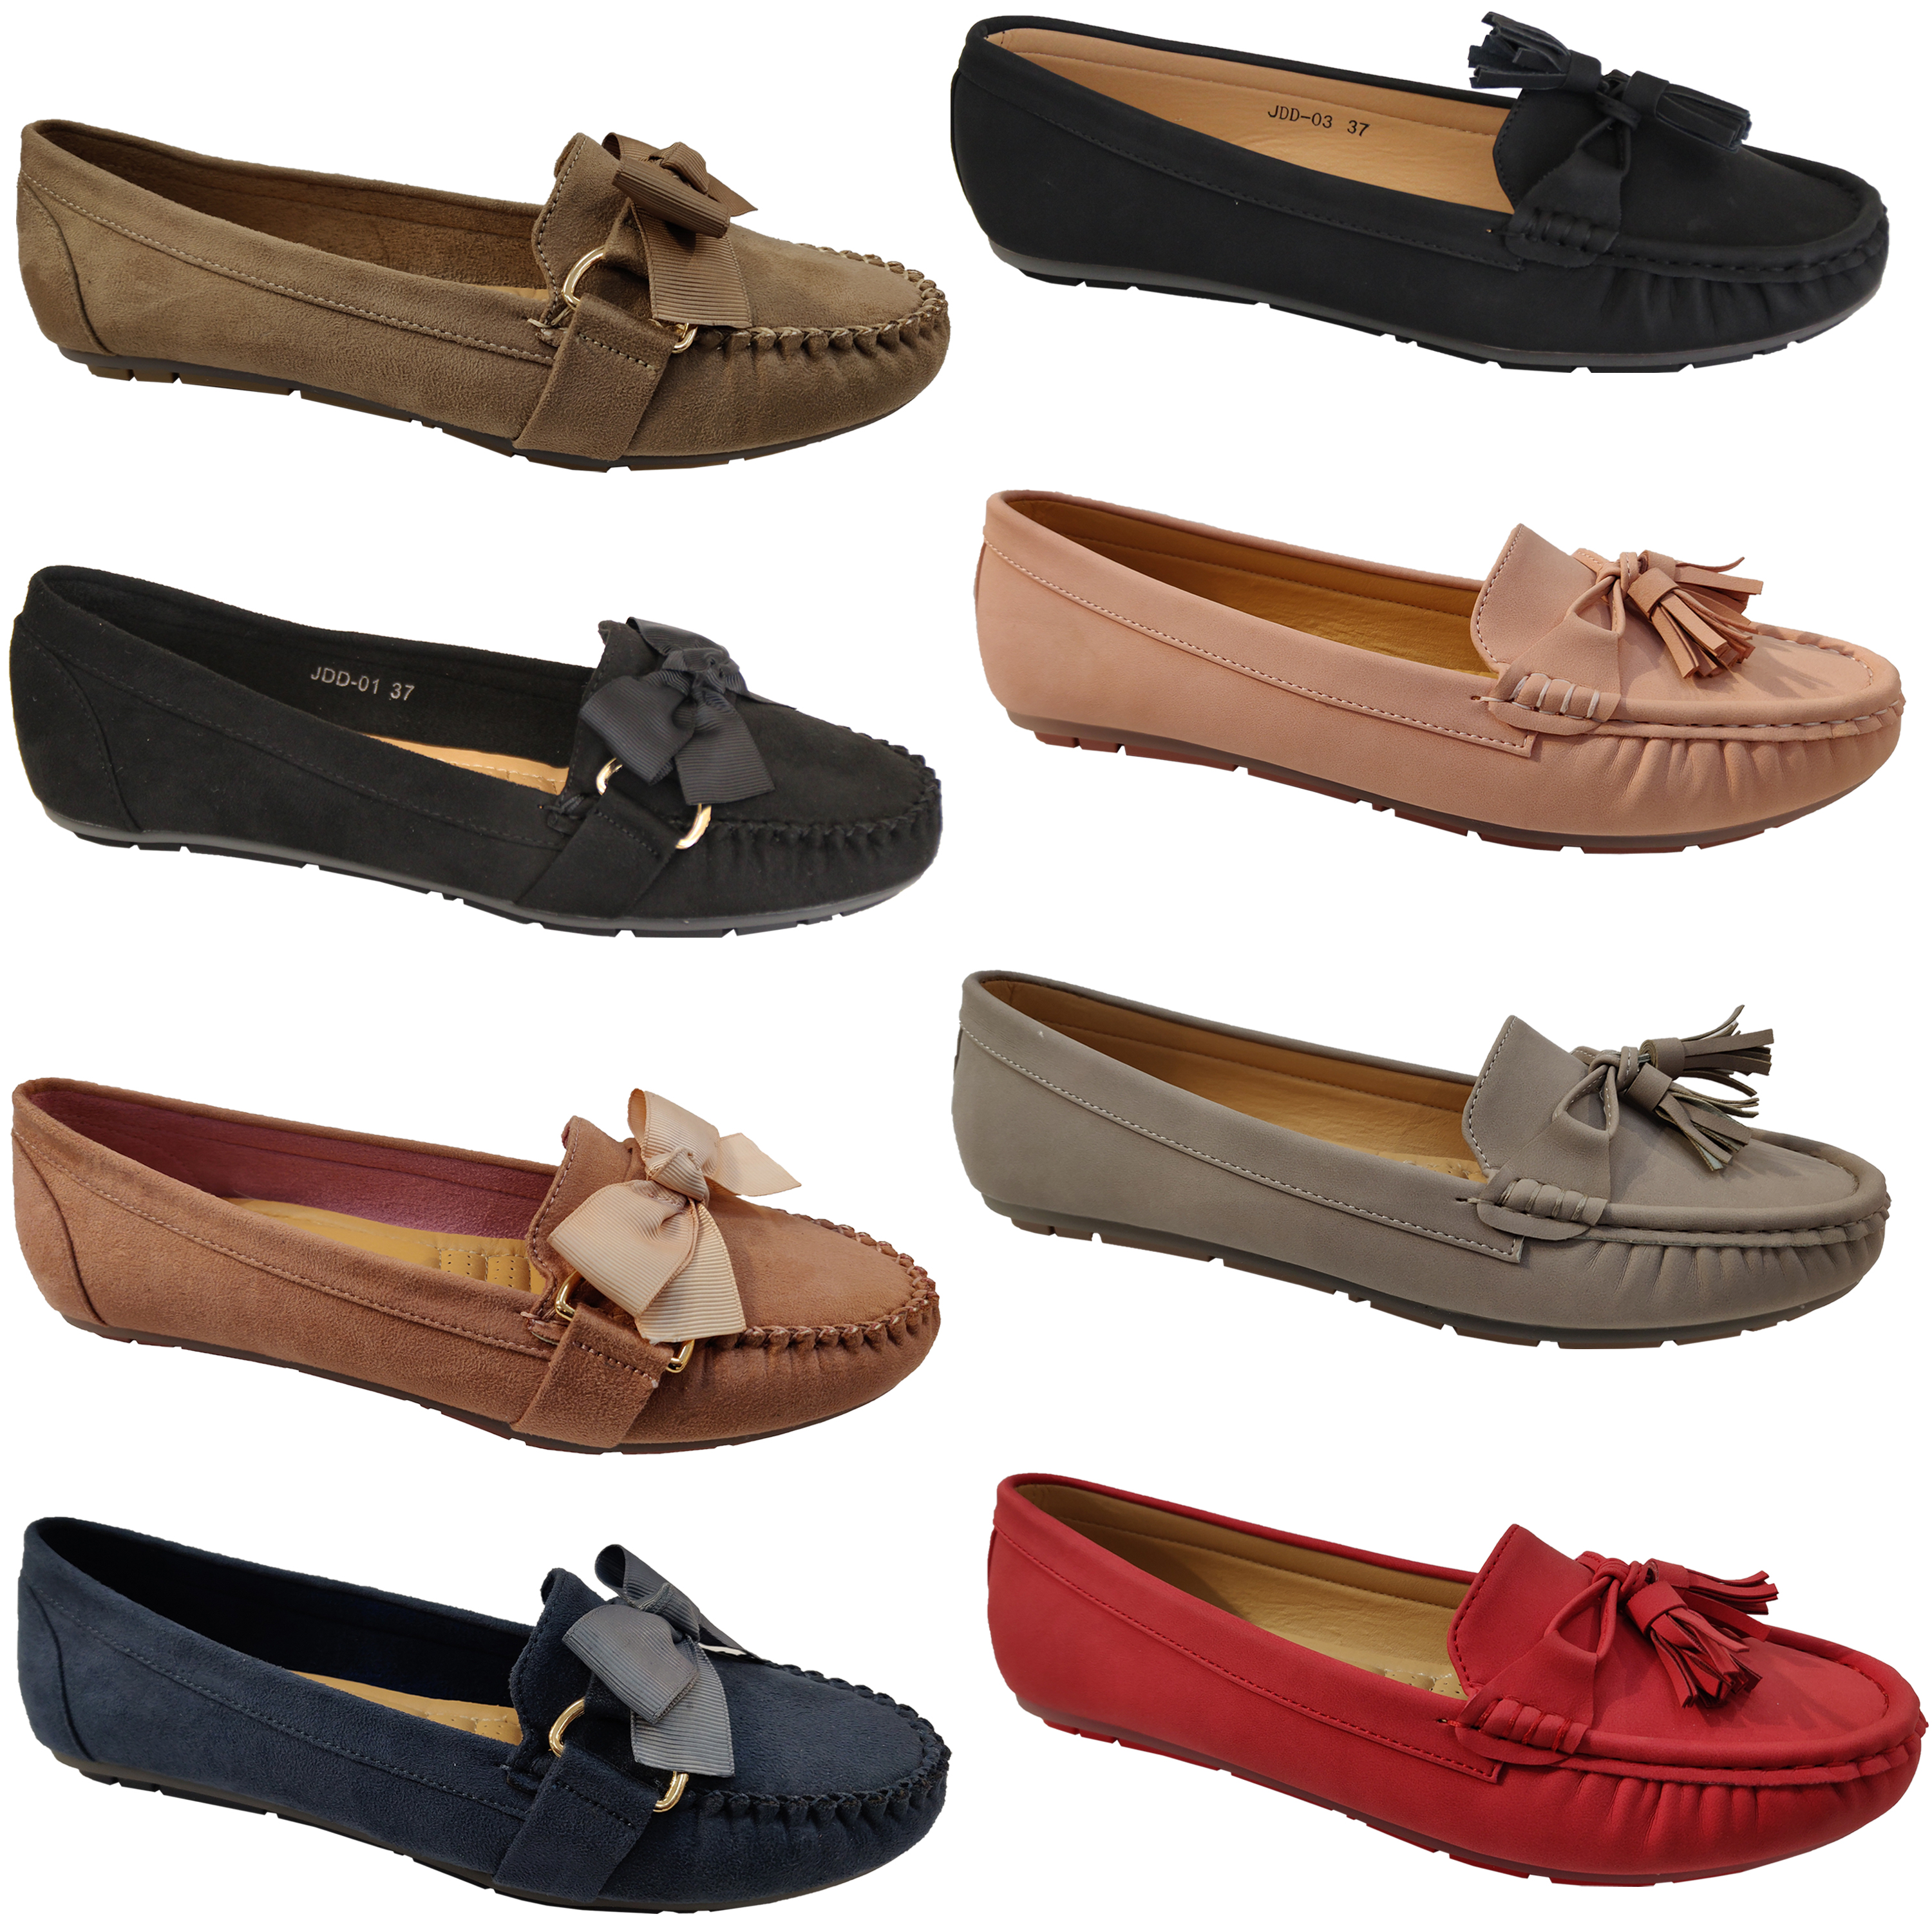 Ladies-Slip-On-Ballerina-Womens-Suede-Look-Pumps-Flat-Bow-Tassels-Shoes-Fashion thumbnail 4